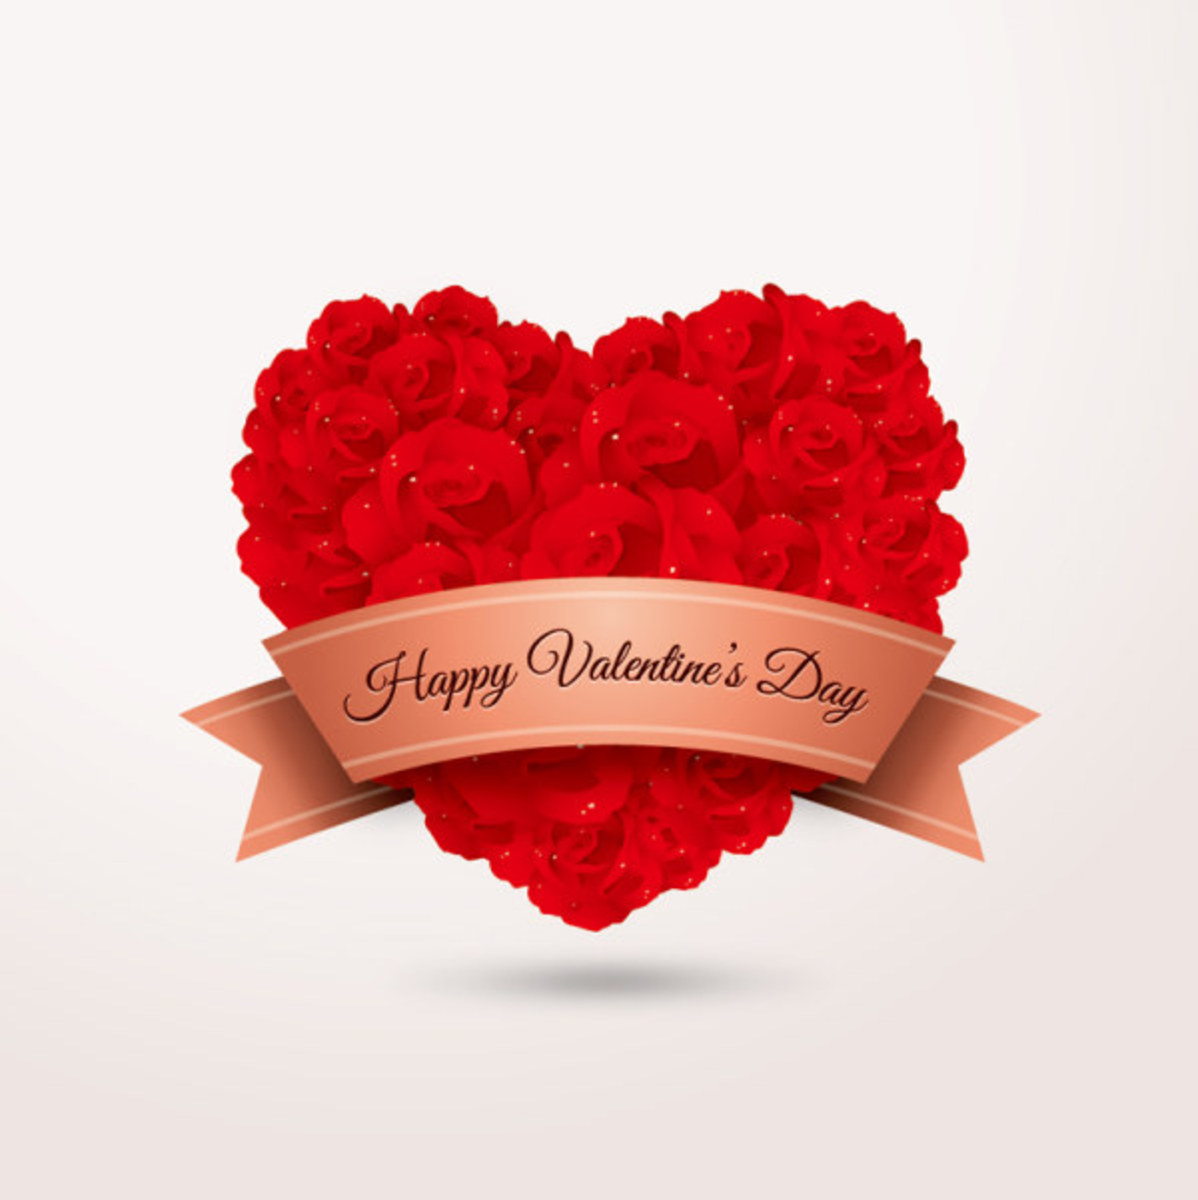 Happy Valentine's Day Banner with Heart of Roses